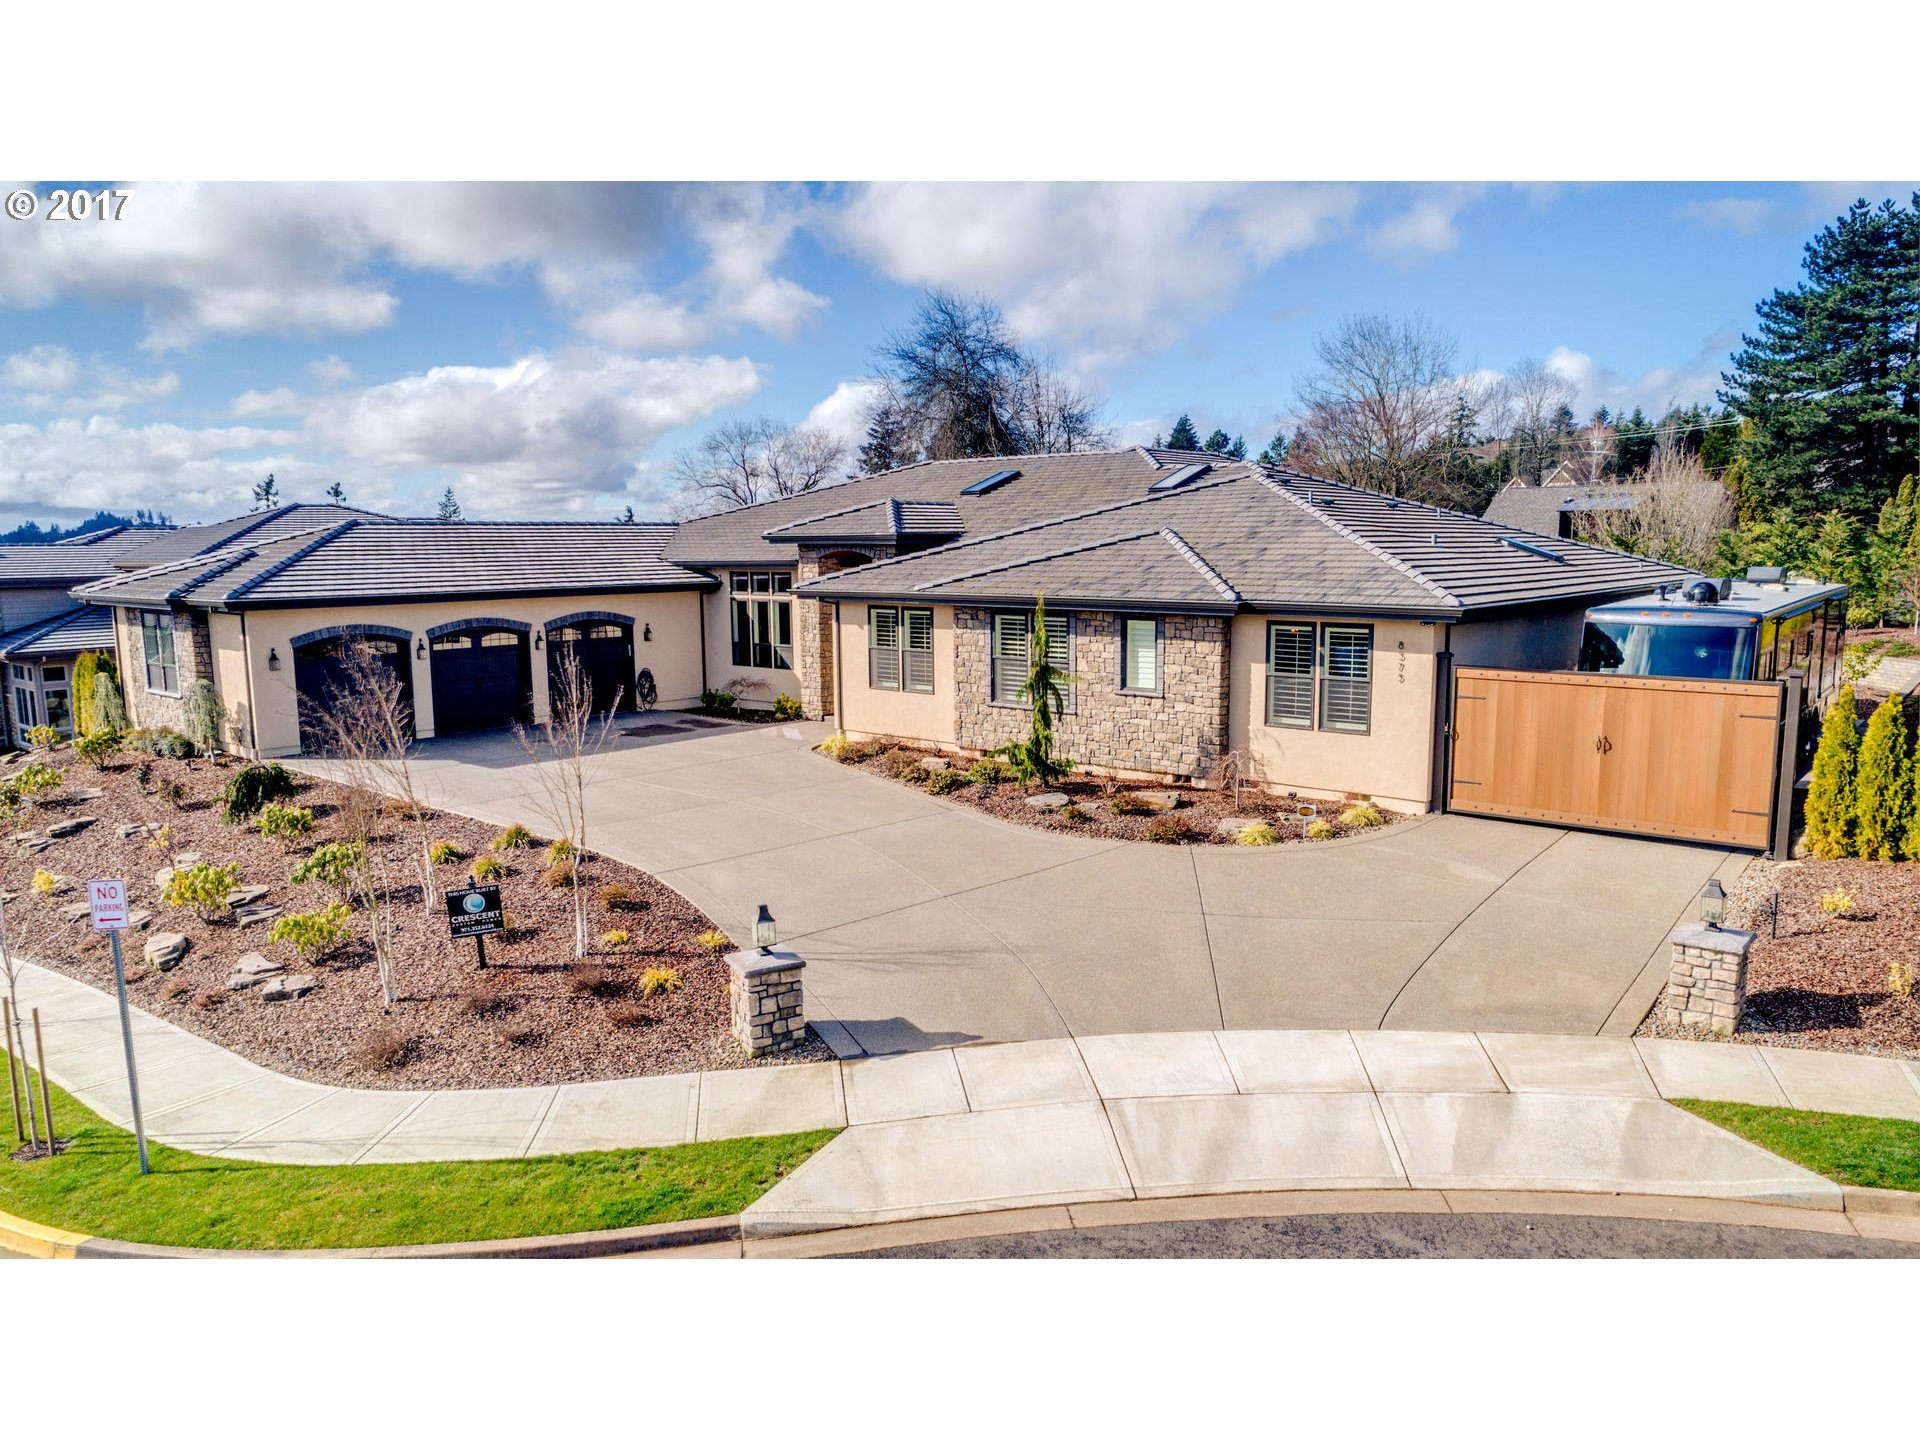 8575 Se Northern Heights Ct, Happy Valley, OR 97086